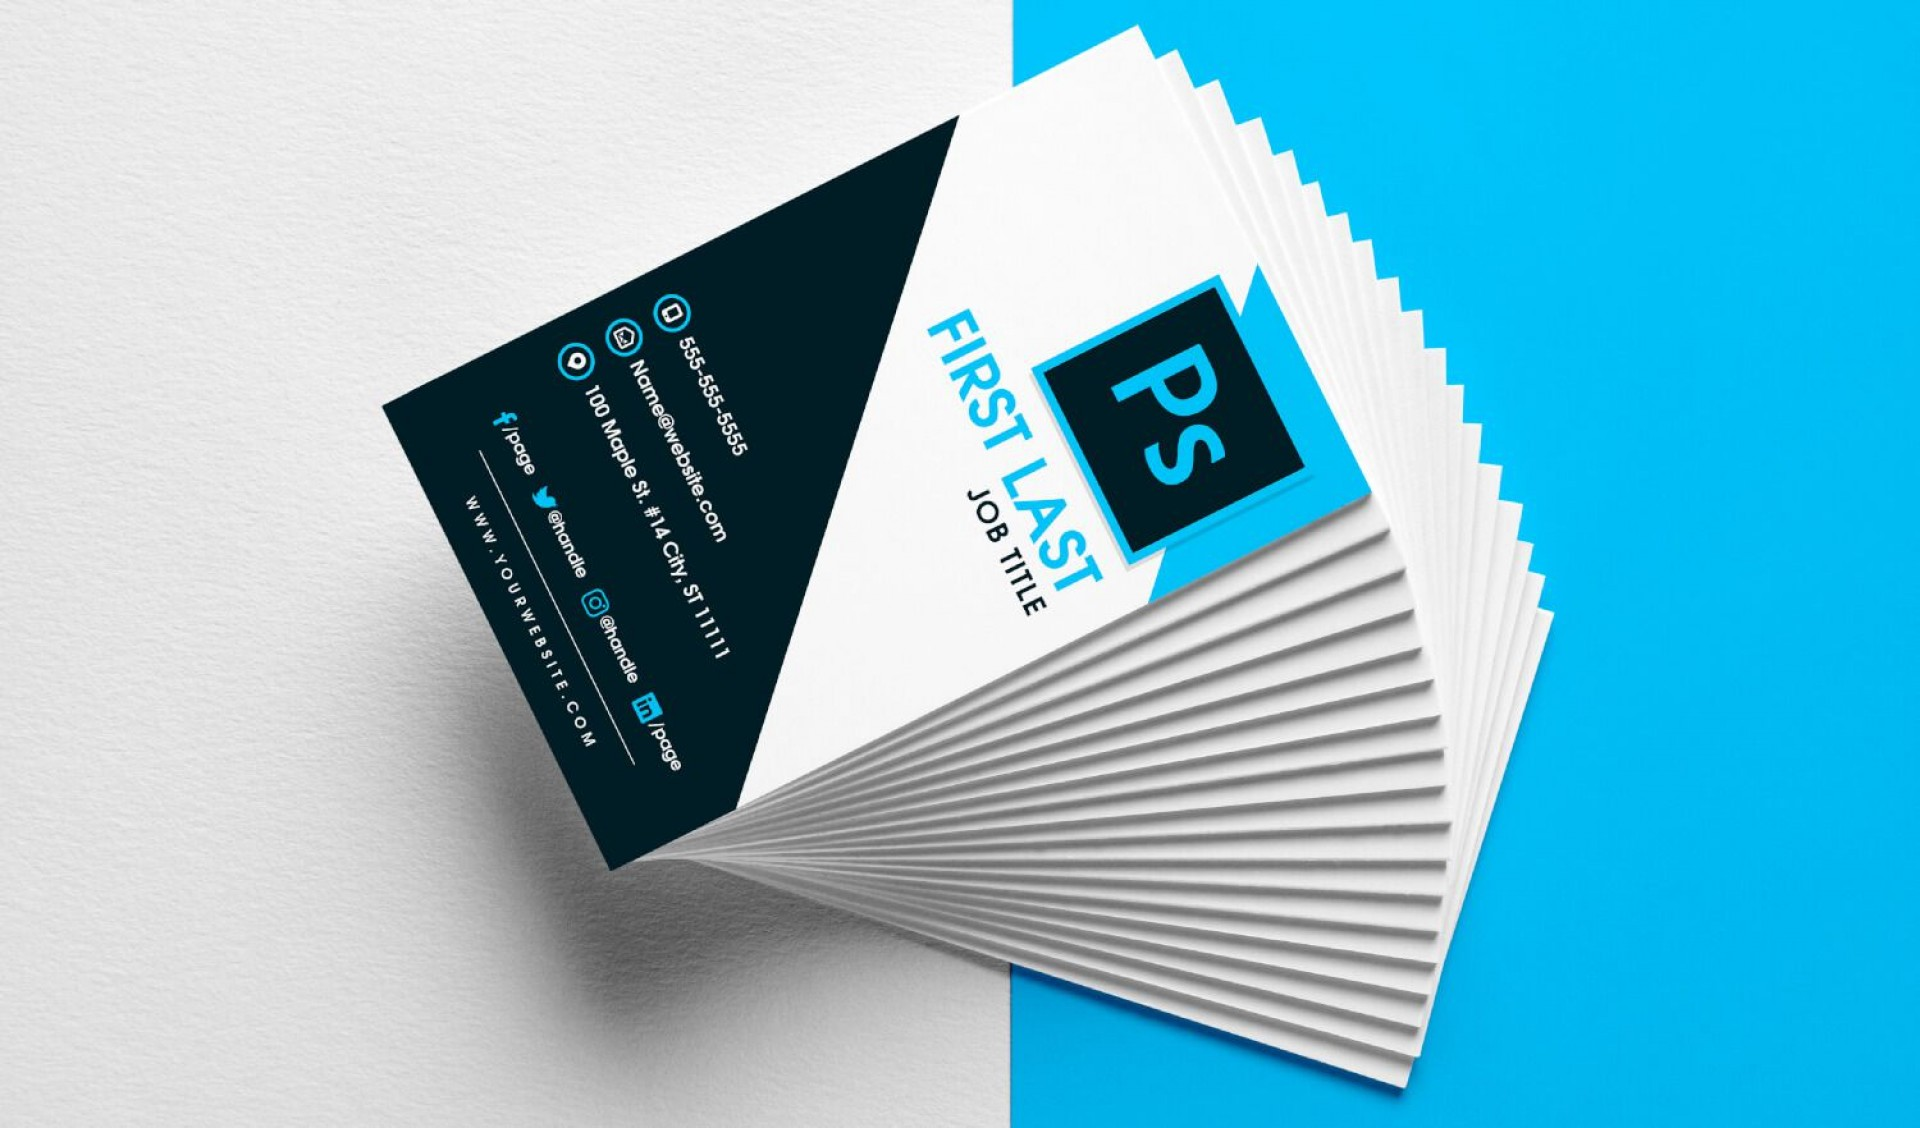 008 Unbelievable Psd Busines Card Template Highest Quality  With Bleed And Crop Mark Vistaprint Free1920